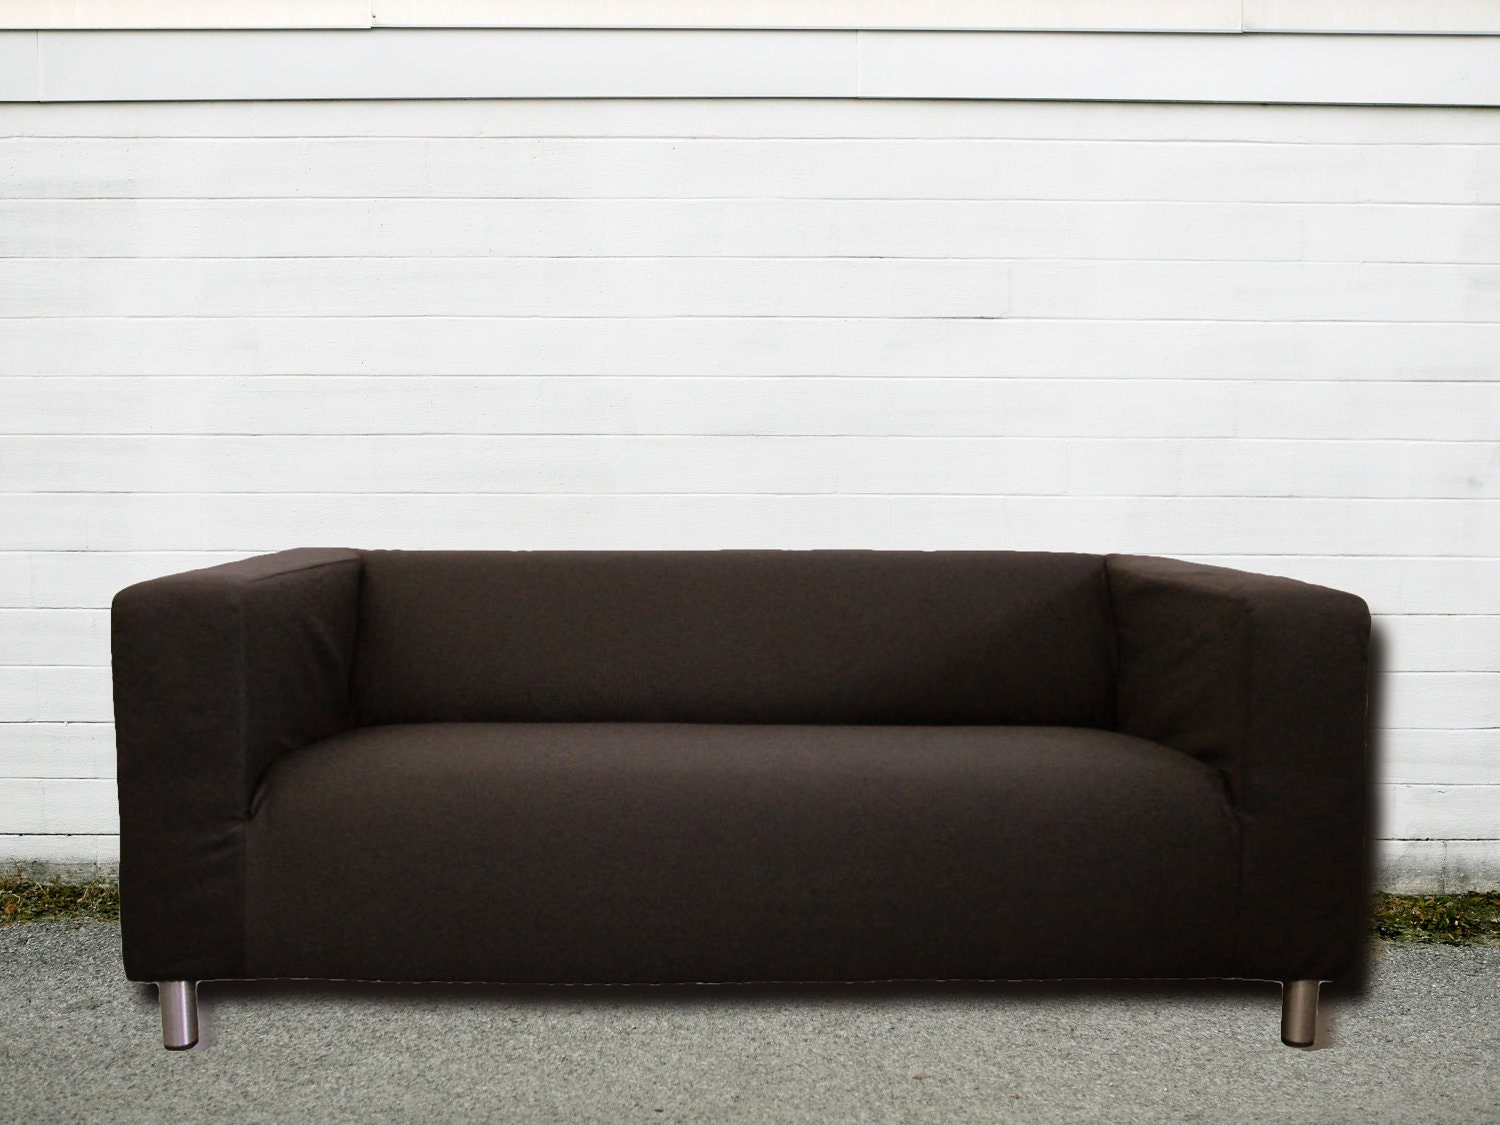 Custom Ikea Klippan Loveseat Slipcover In Espresso Brown Twill